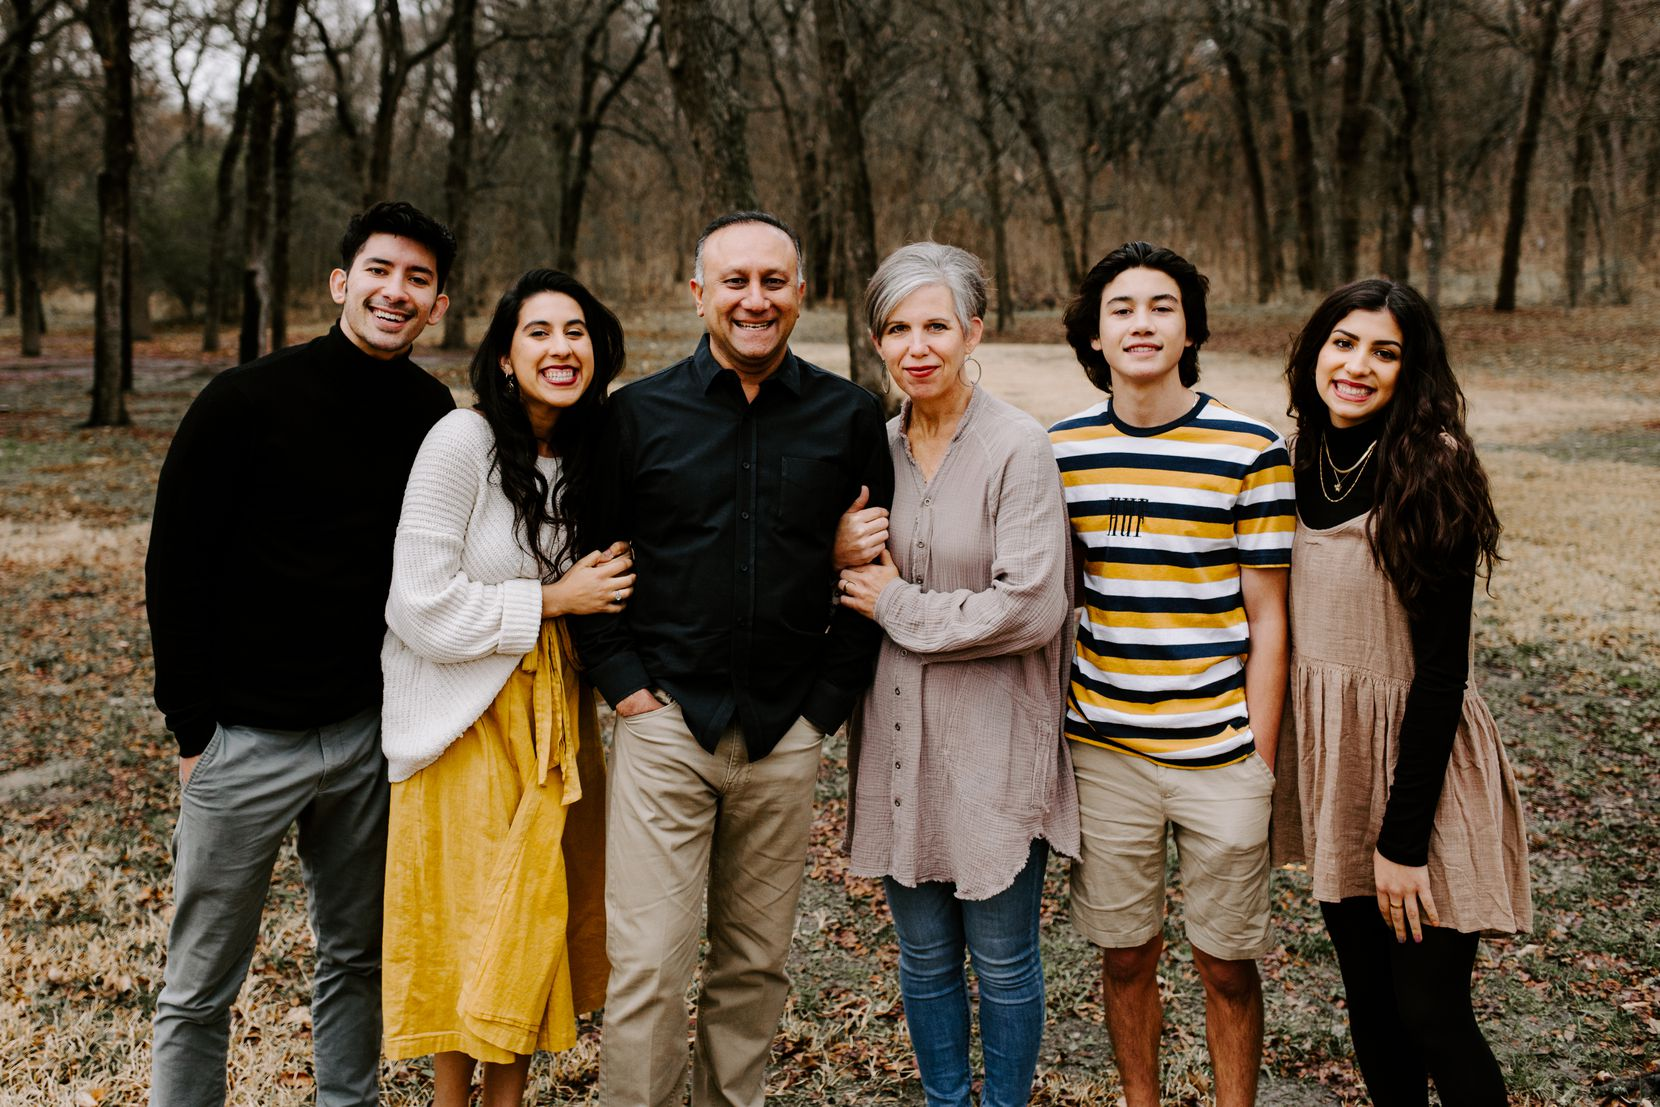 Ali and Judy Master (center) with their four children at Thanksgiving 2019. From left are Noah, 22; Mollie, 25; Isaac, 17; and Emma, 19.